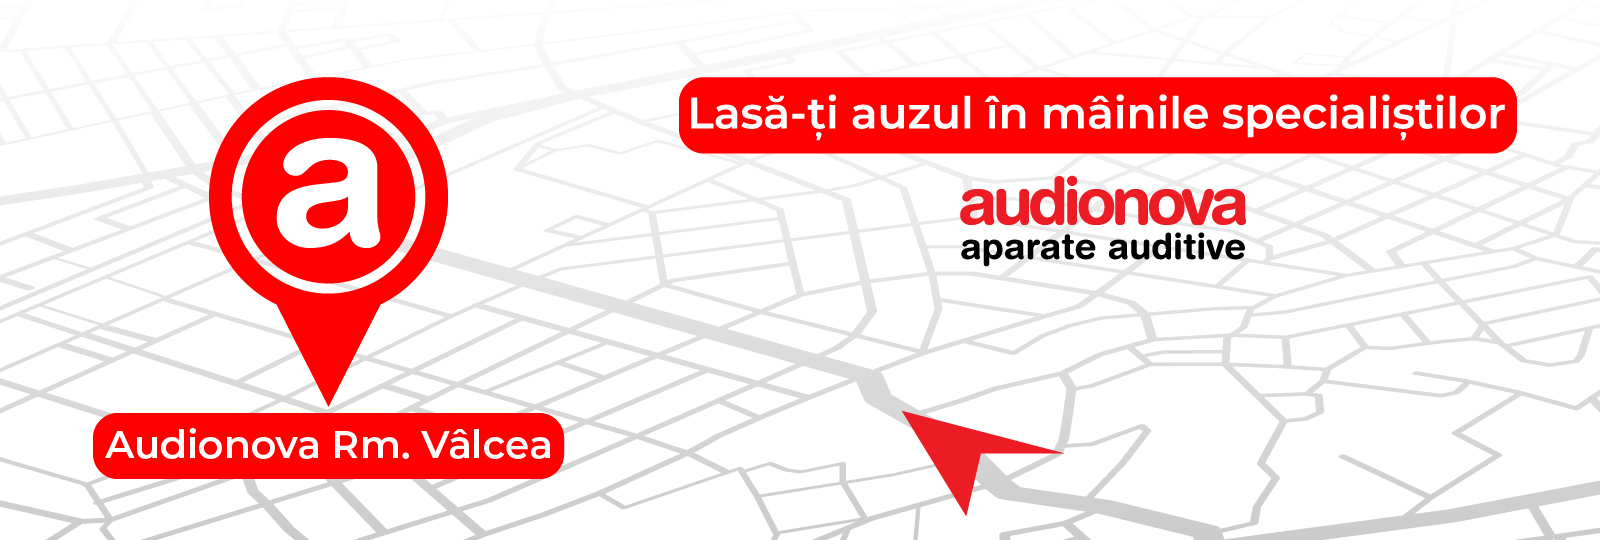 aparate auditive ramnicu valcea